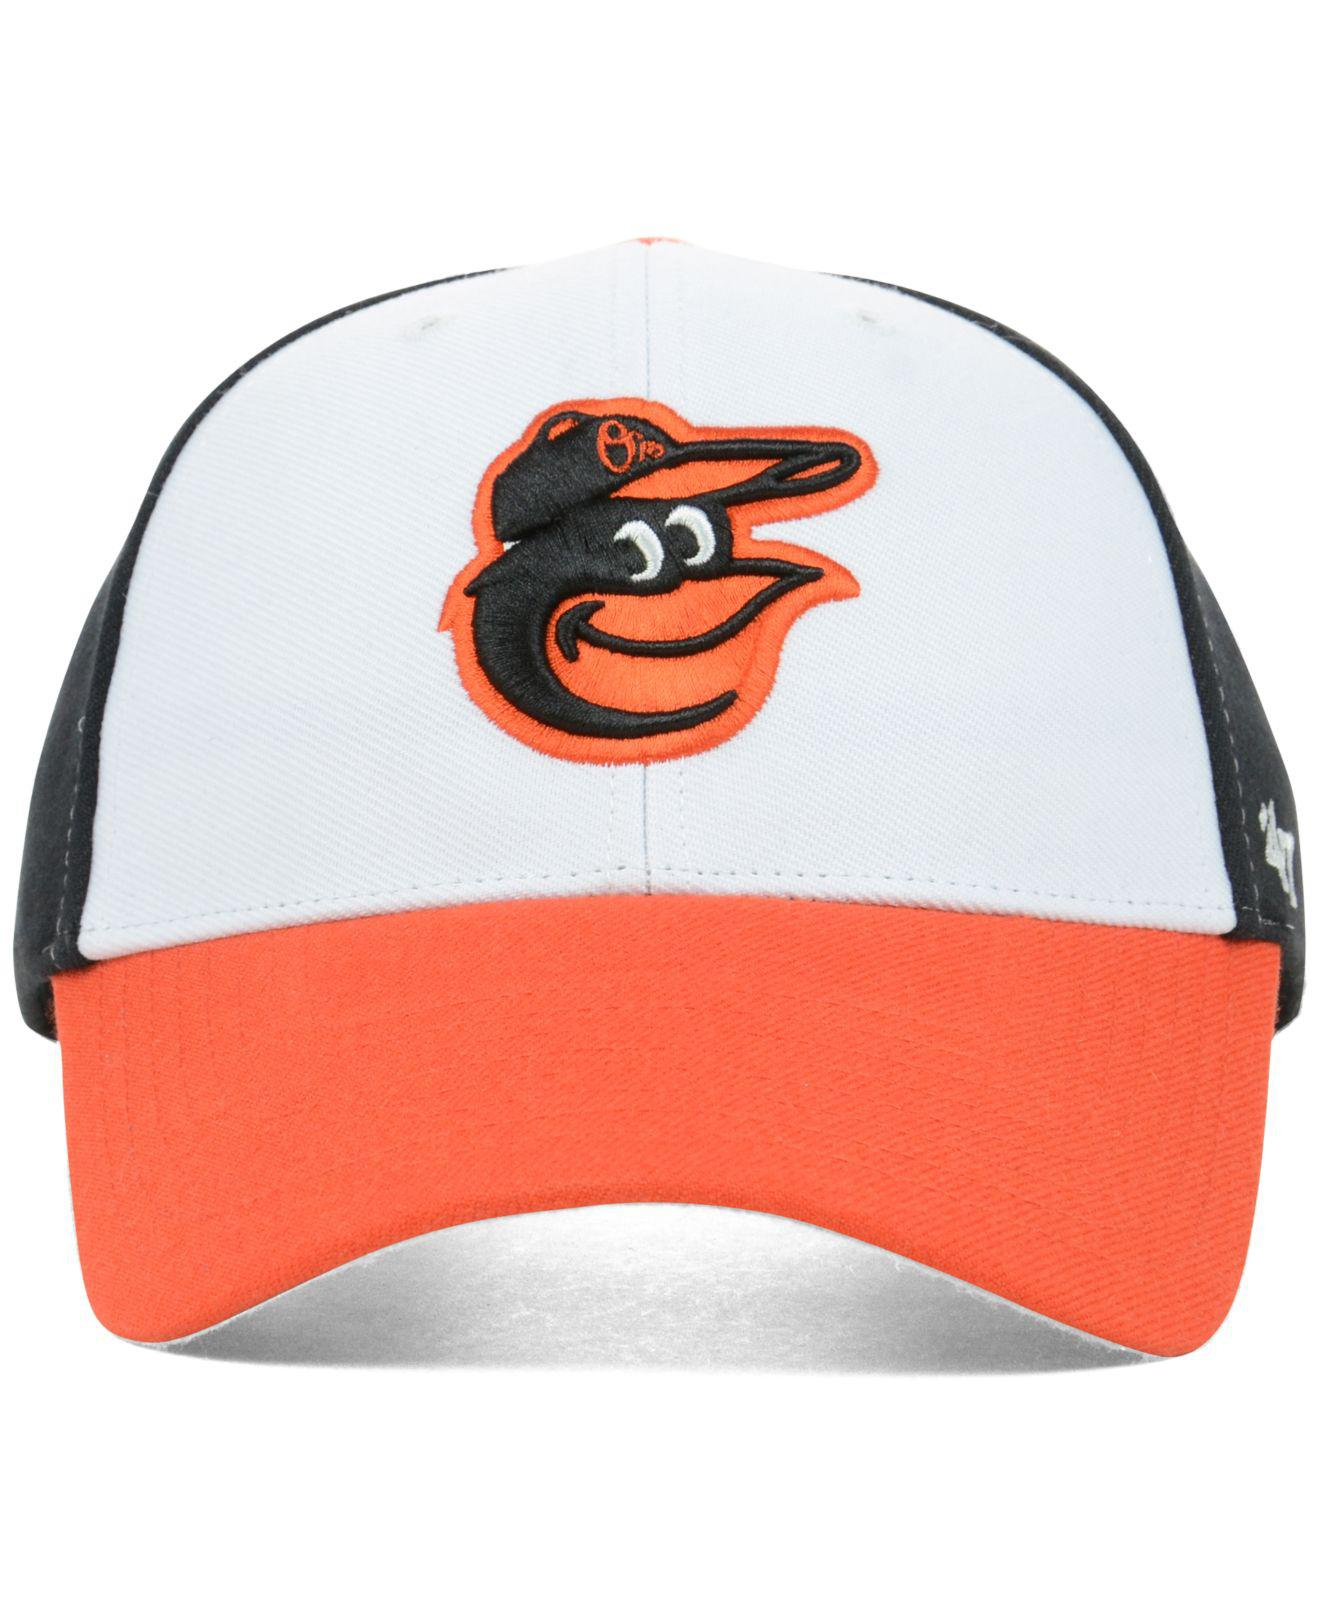 check out a6247 ae18e ... spain lyst 47 brand baltimore orioles mlb mvp curved cap in black for  men 1ca4b d2ed6